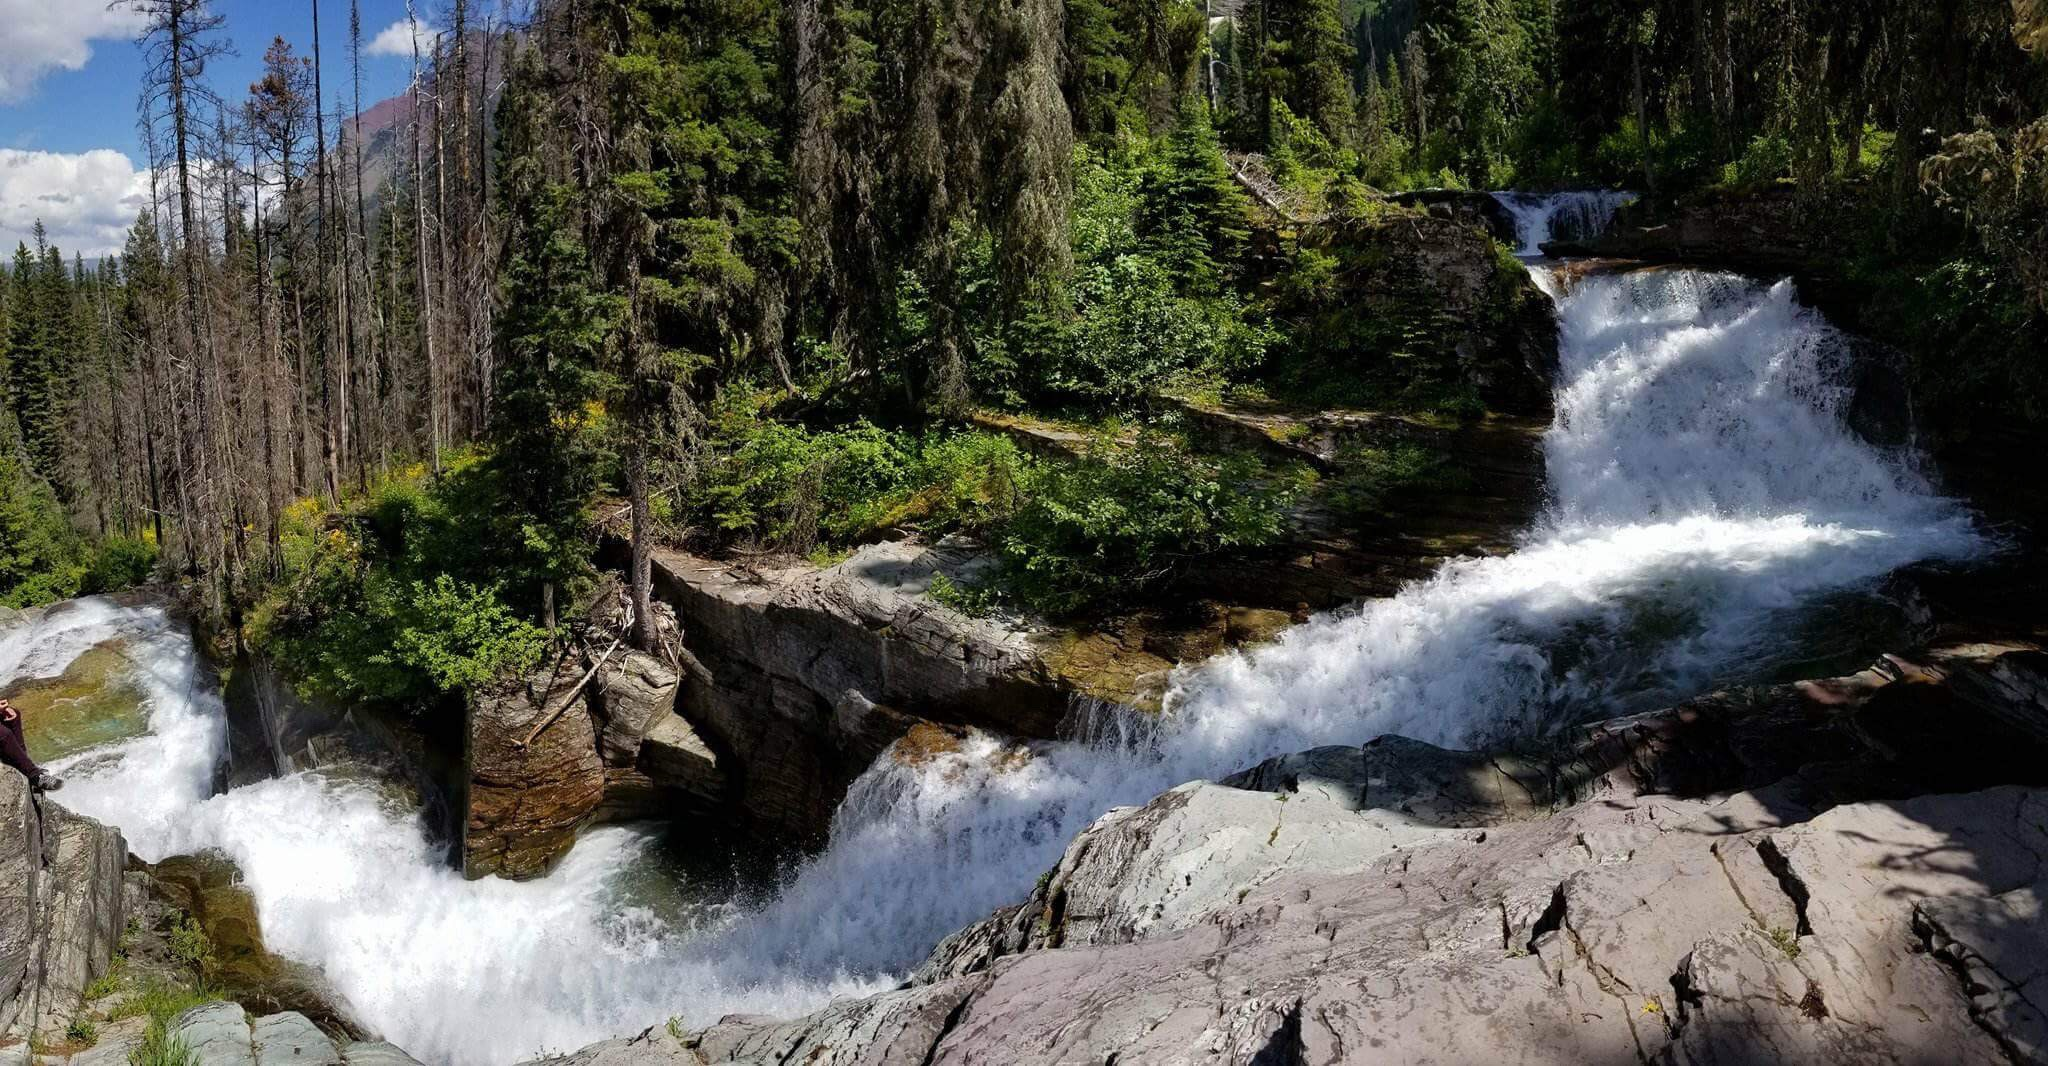 Oh  Glacier National Park  you have our hearts! She's pretty gorgeous isn't she?